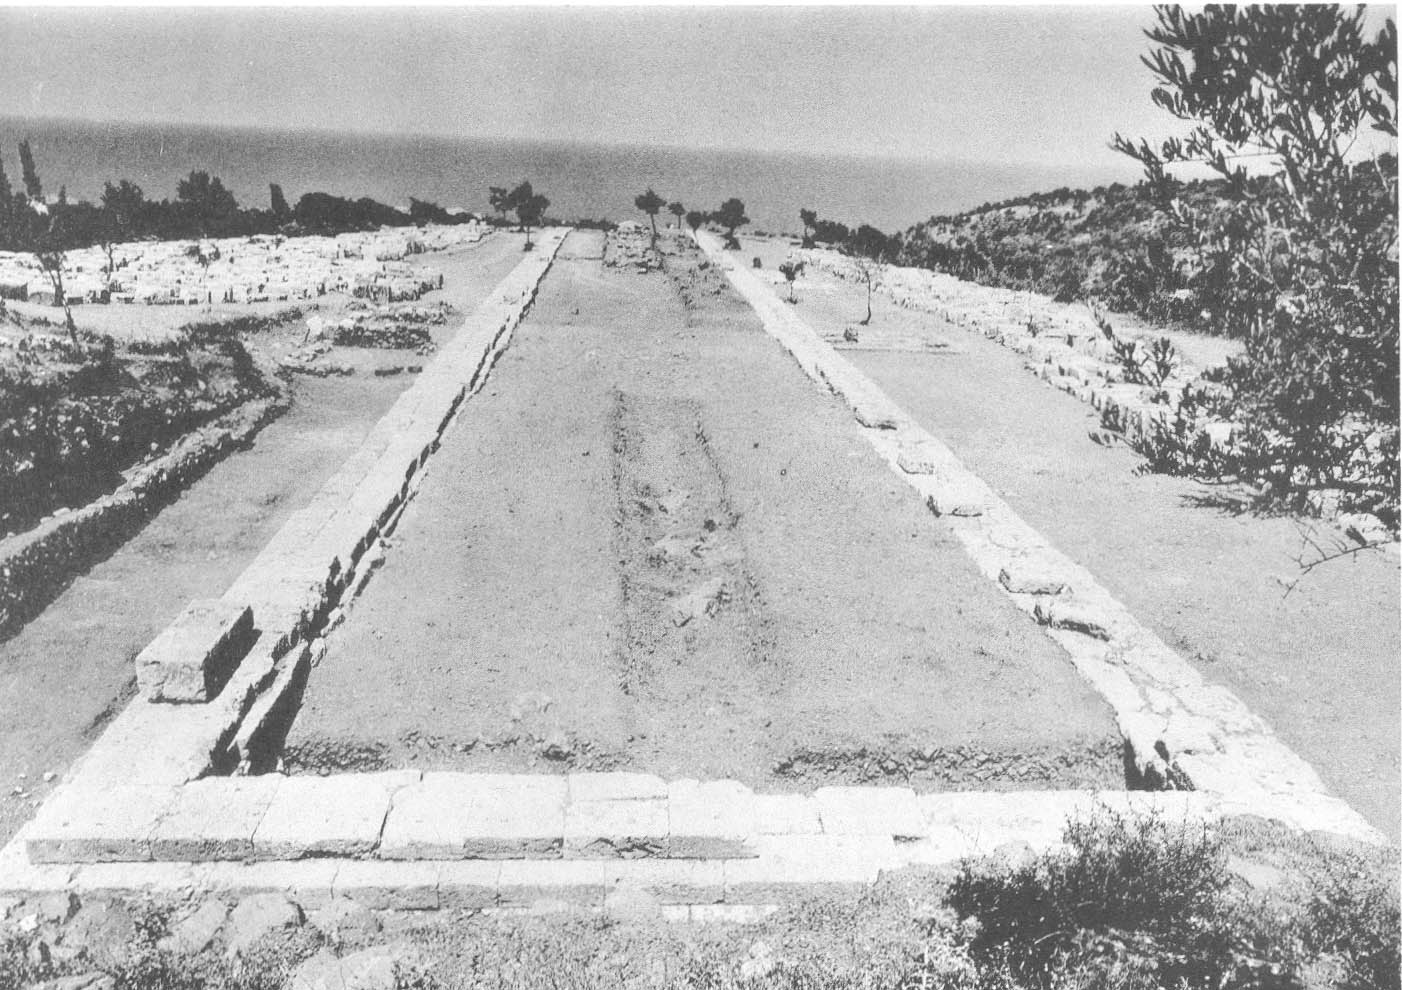 Stoa when first excavated in 1964.